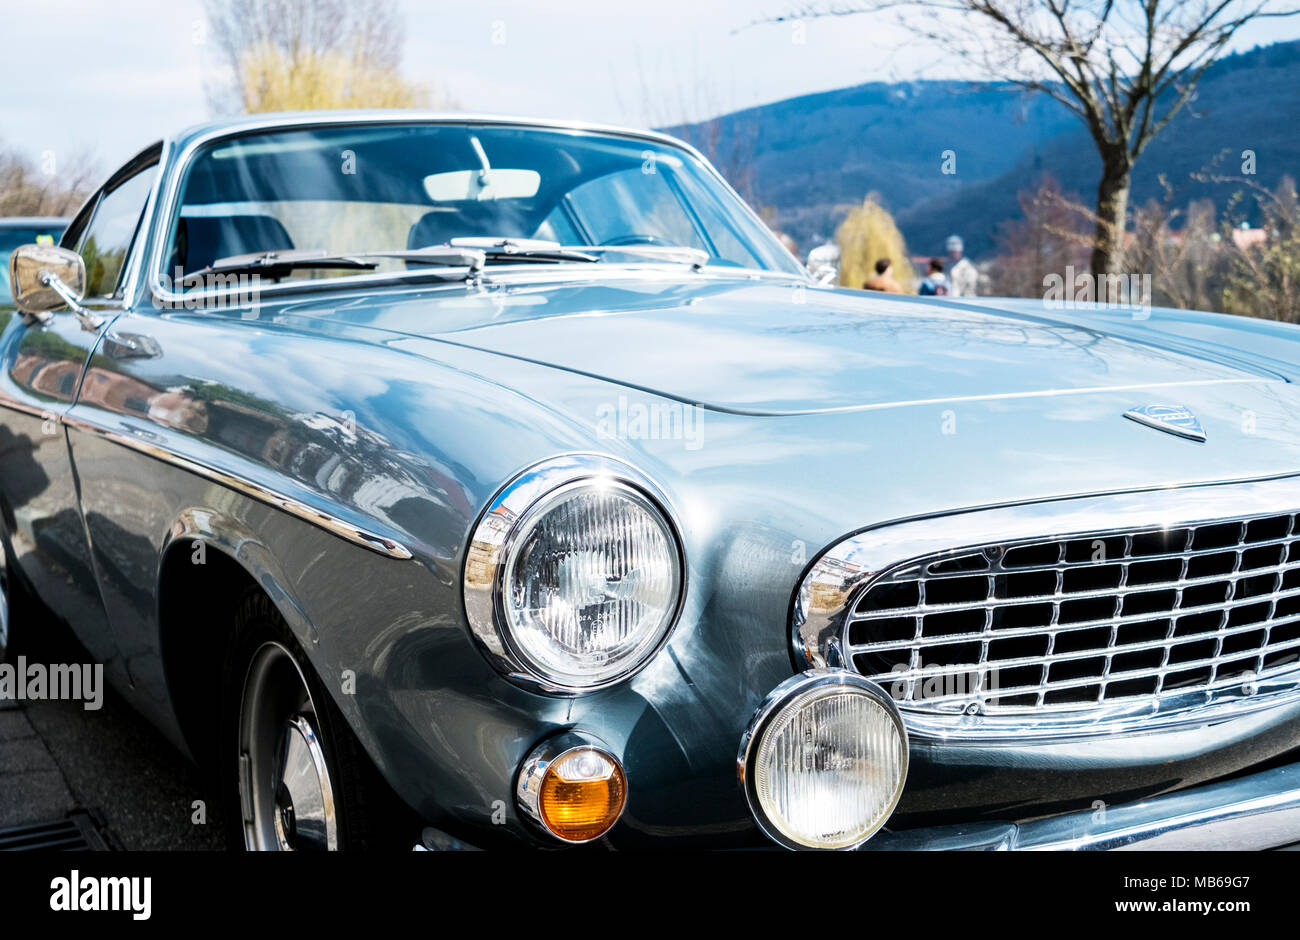 Seventies' oldtimer close-up - Stock Image